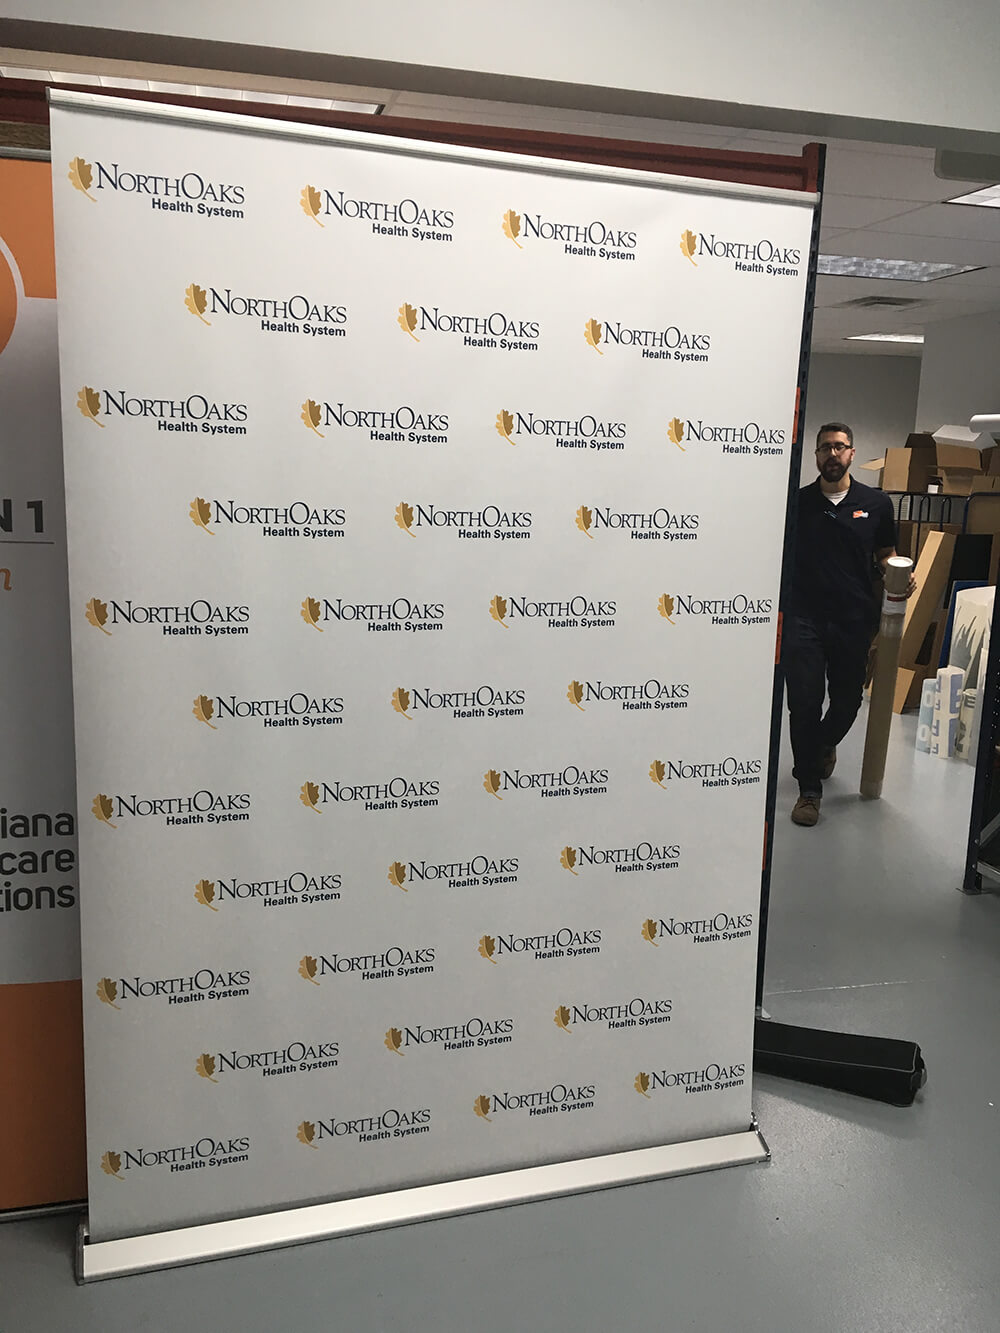 EXHIBITOR RESOURCES - Northoaks large retractable banner